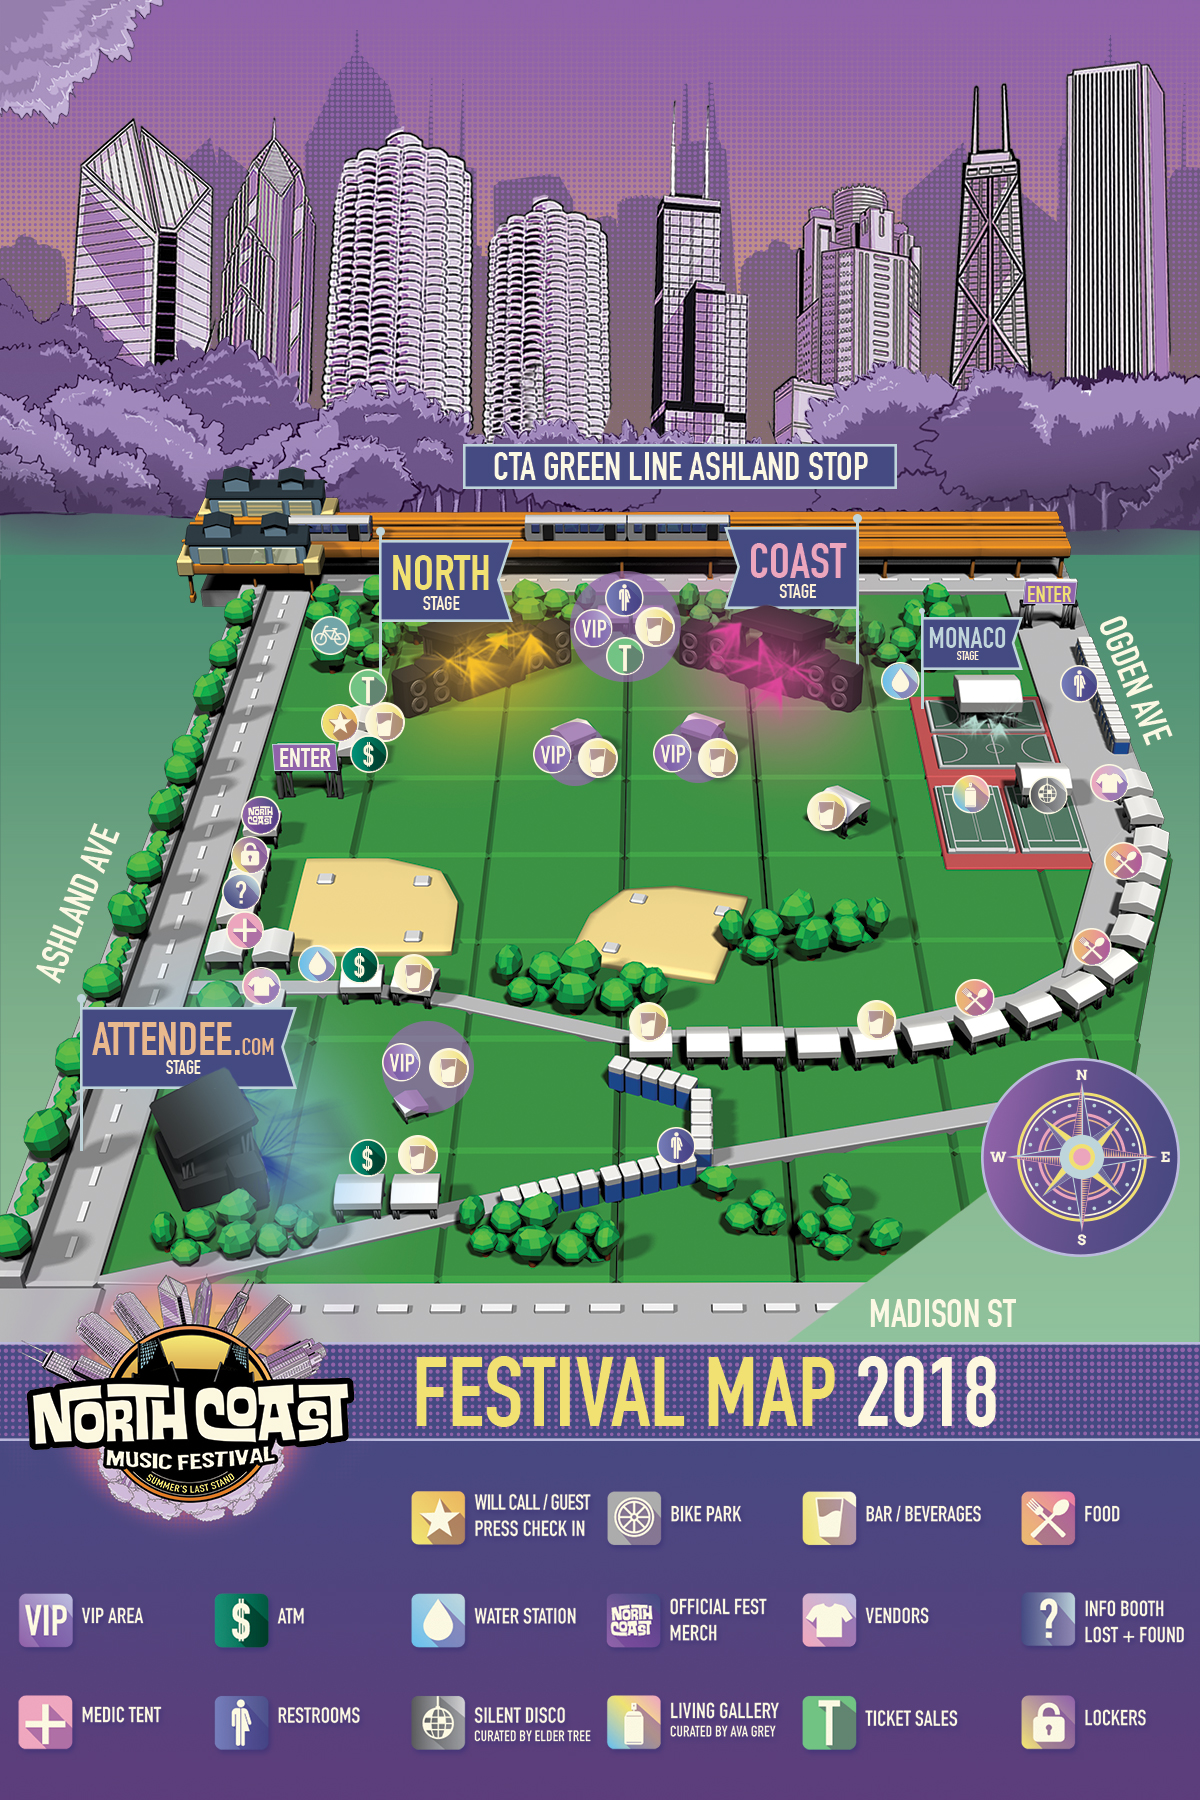 Finally, here is the map! Plan ahead so you know where all of your artists will be playing and where the nearest water station is. Get hyped! Labor Day weekend is creeping up!